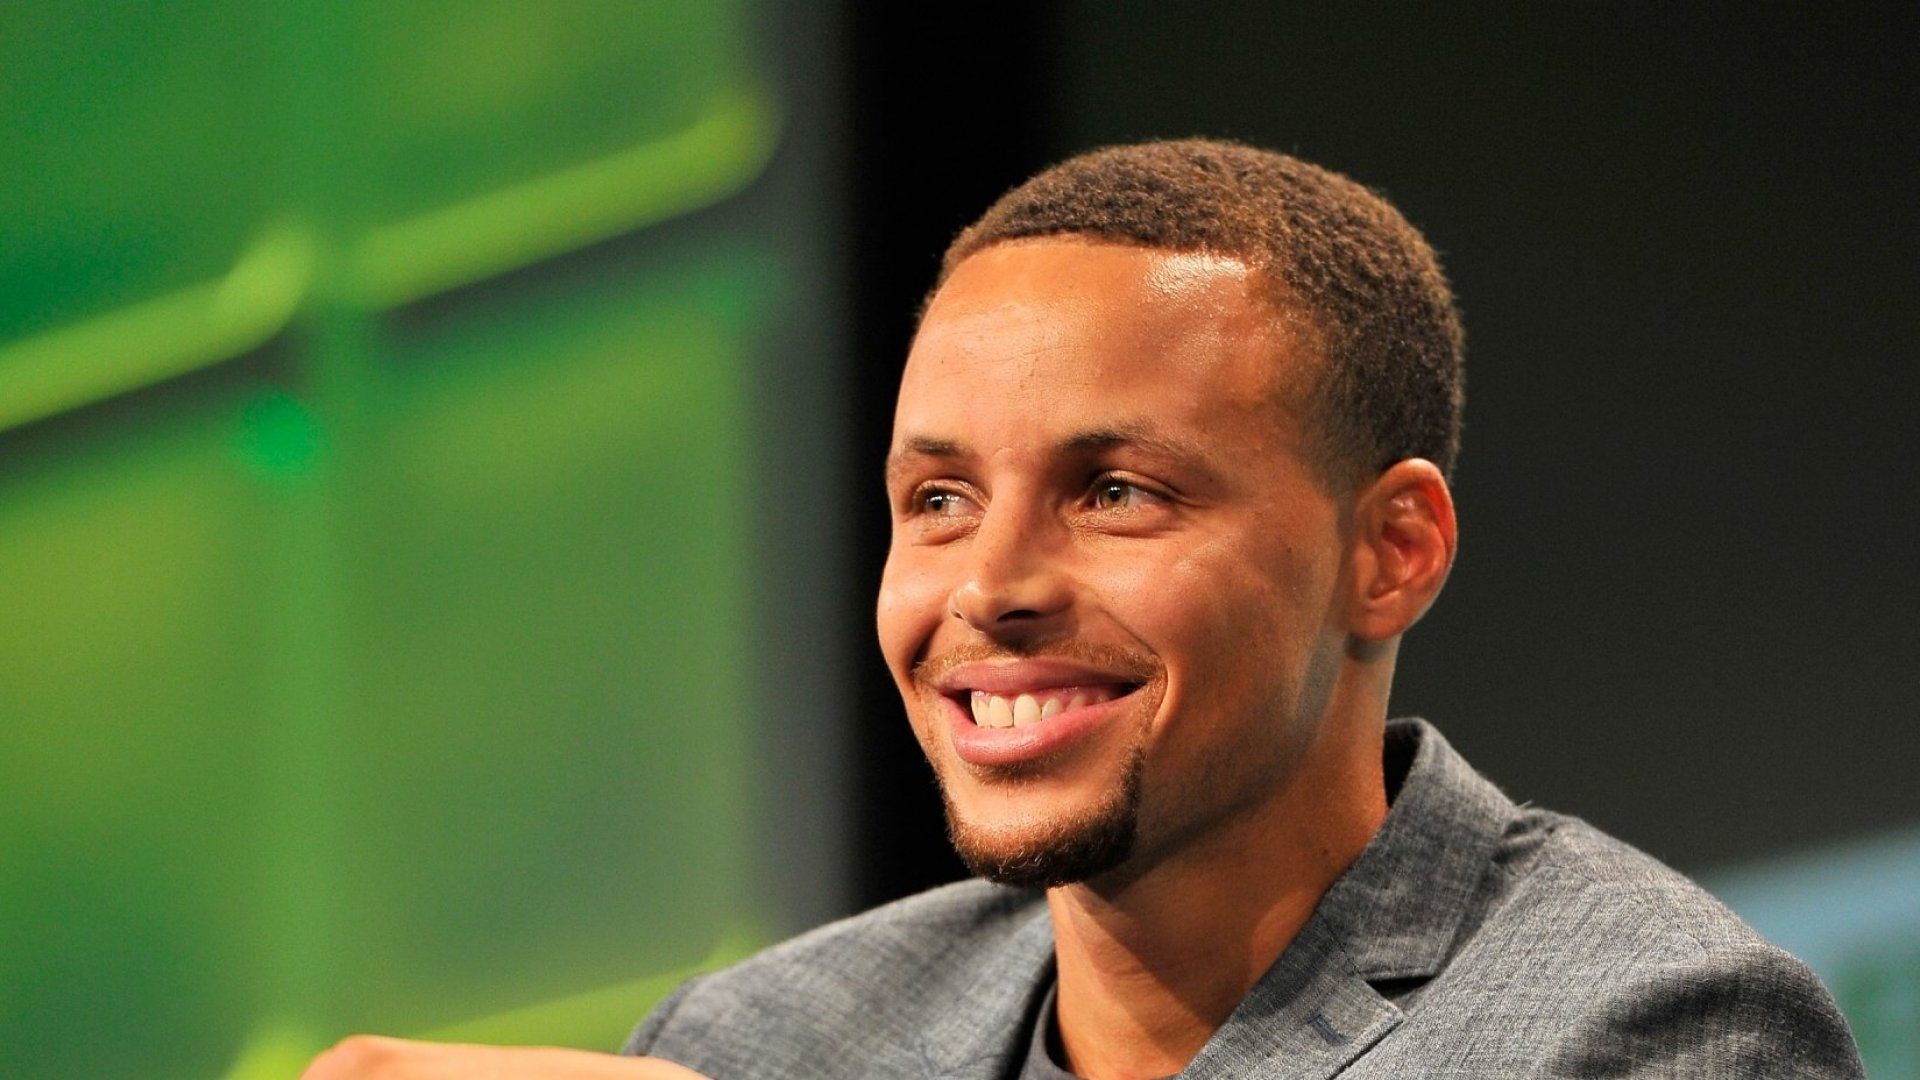 New Steph Curry Shoes Set to Launch at Critical Moment for Under Armour